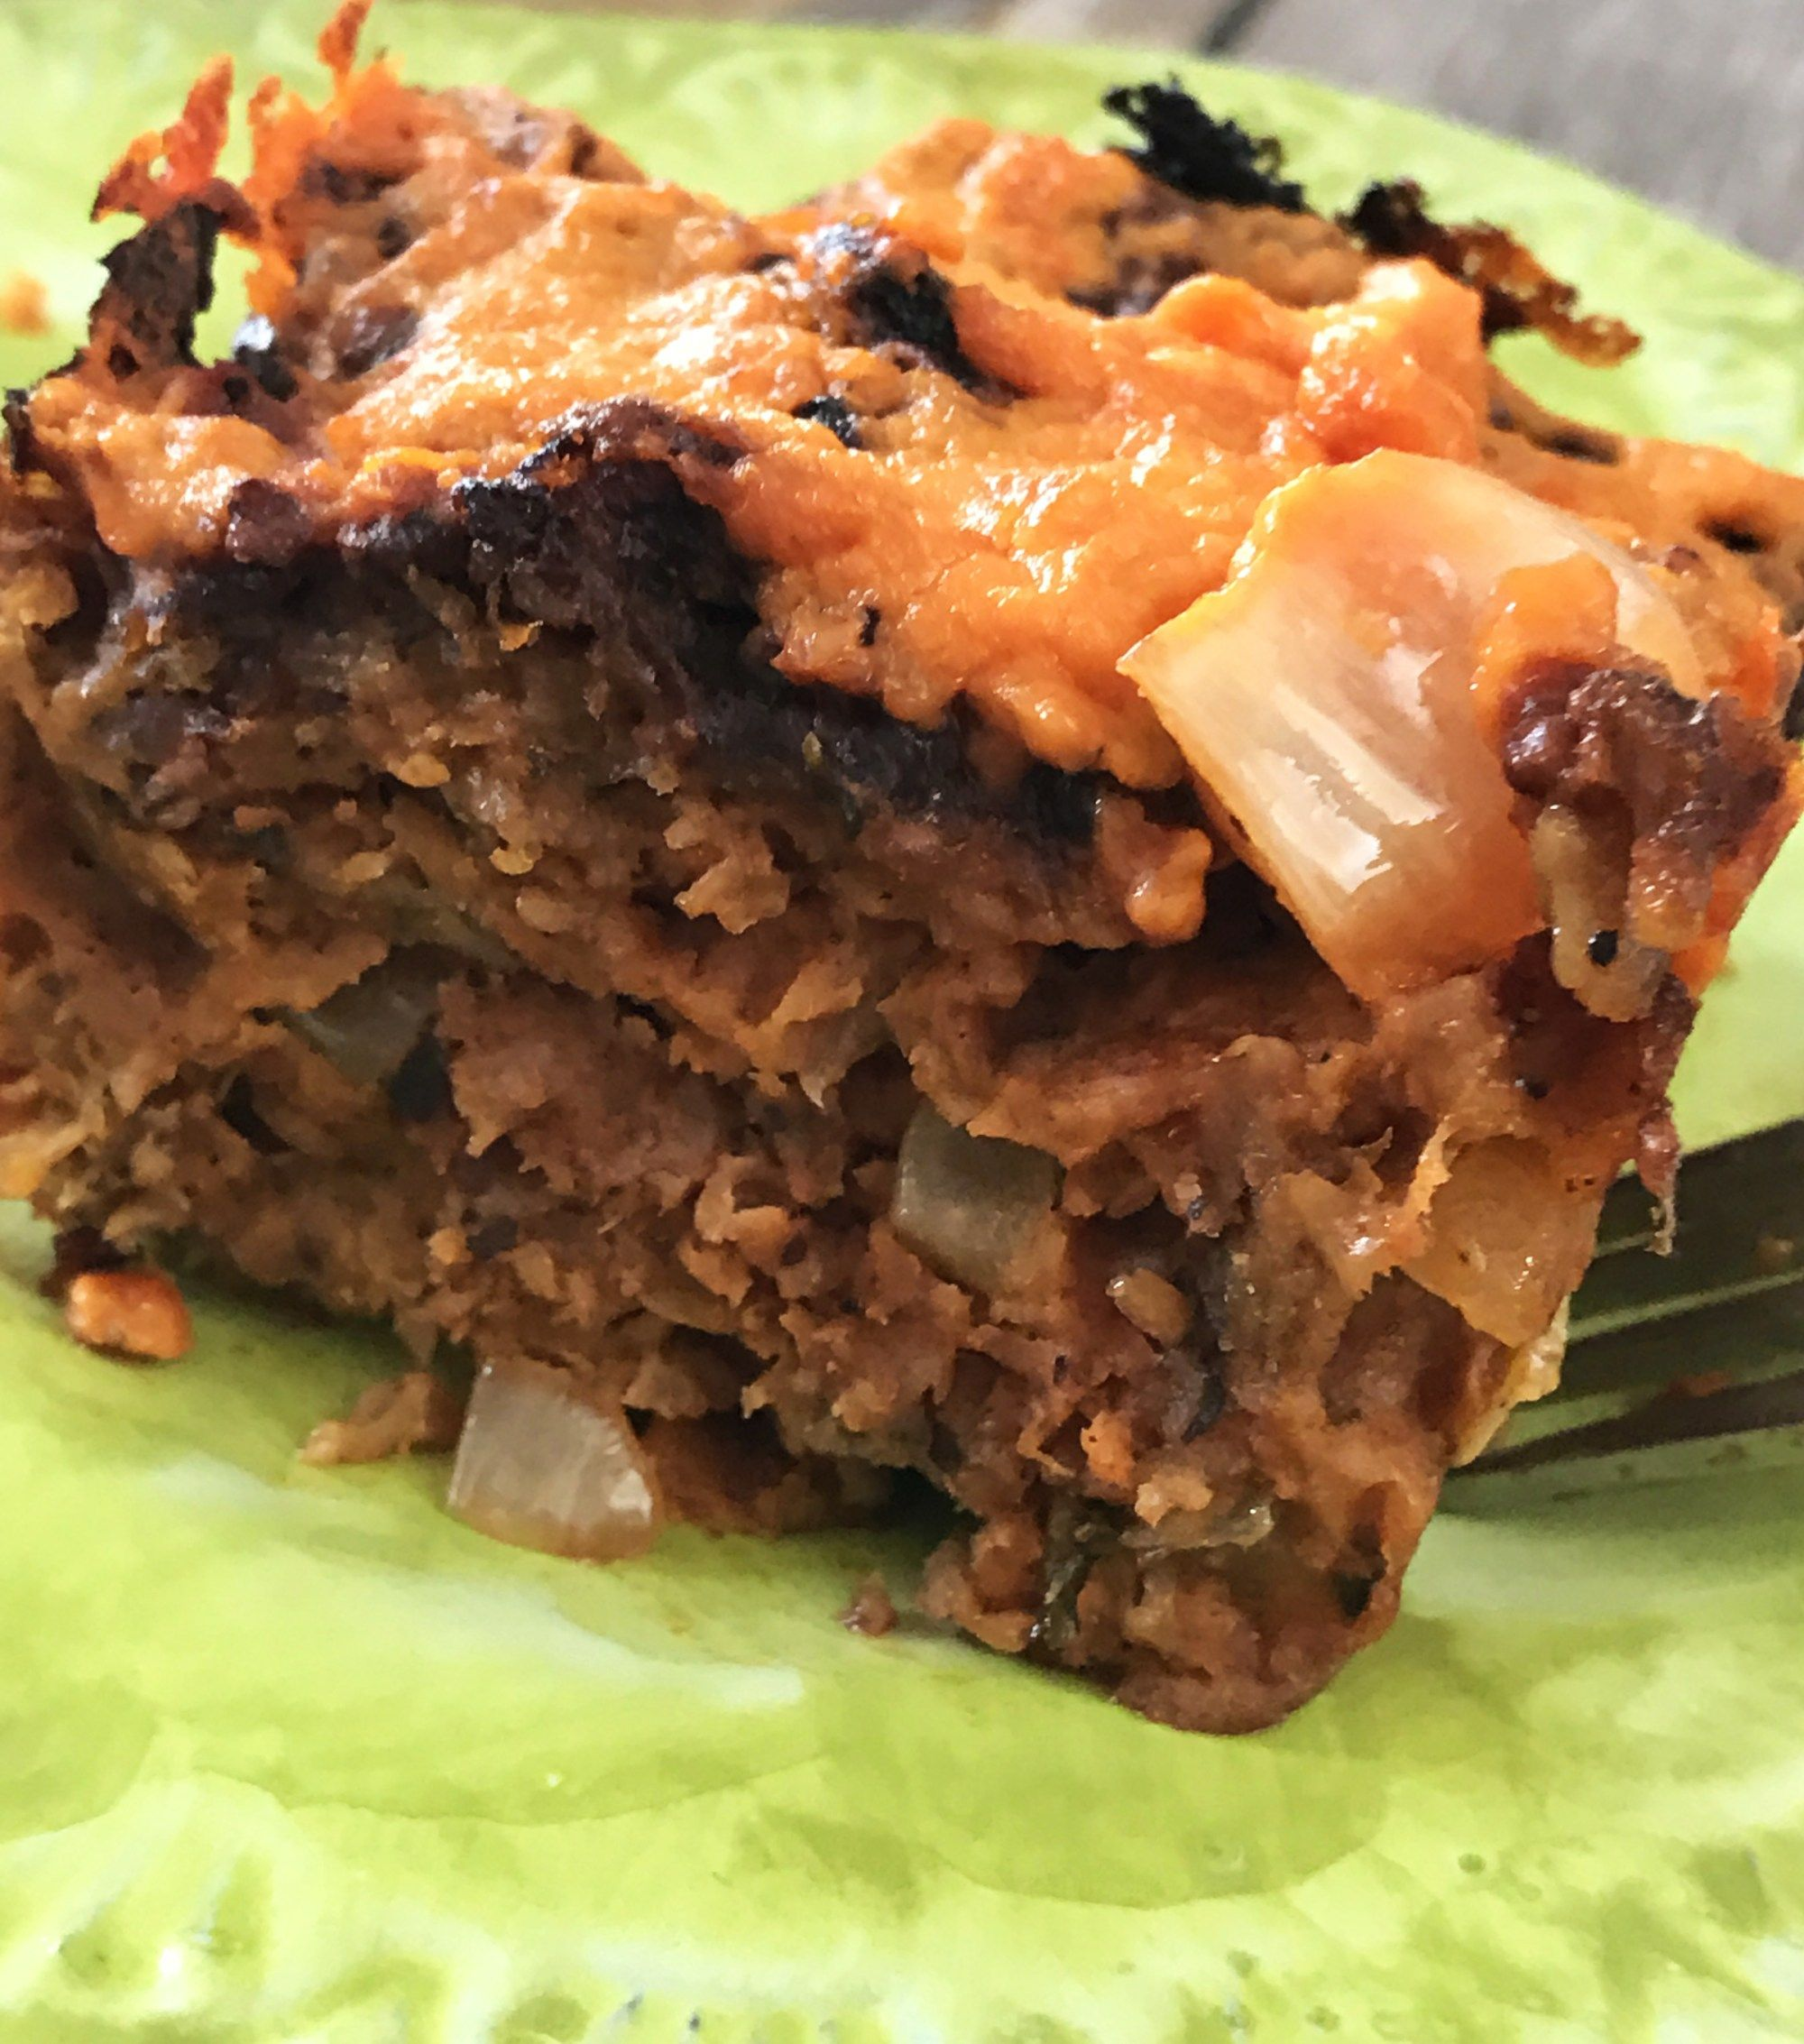 This tasty vegan version of meatloaf starring Beanfields